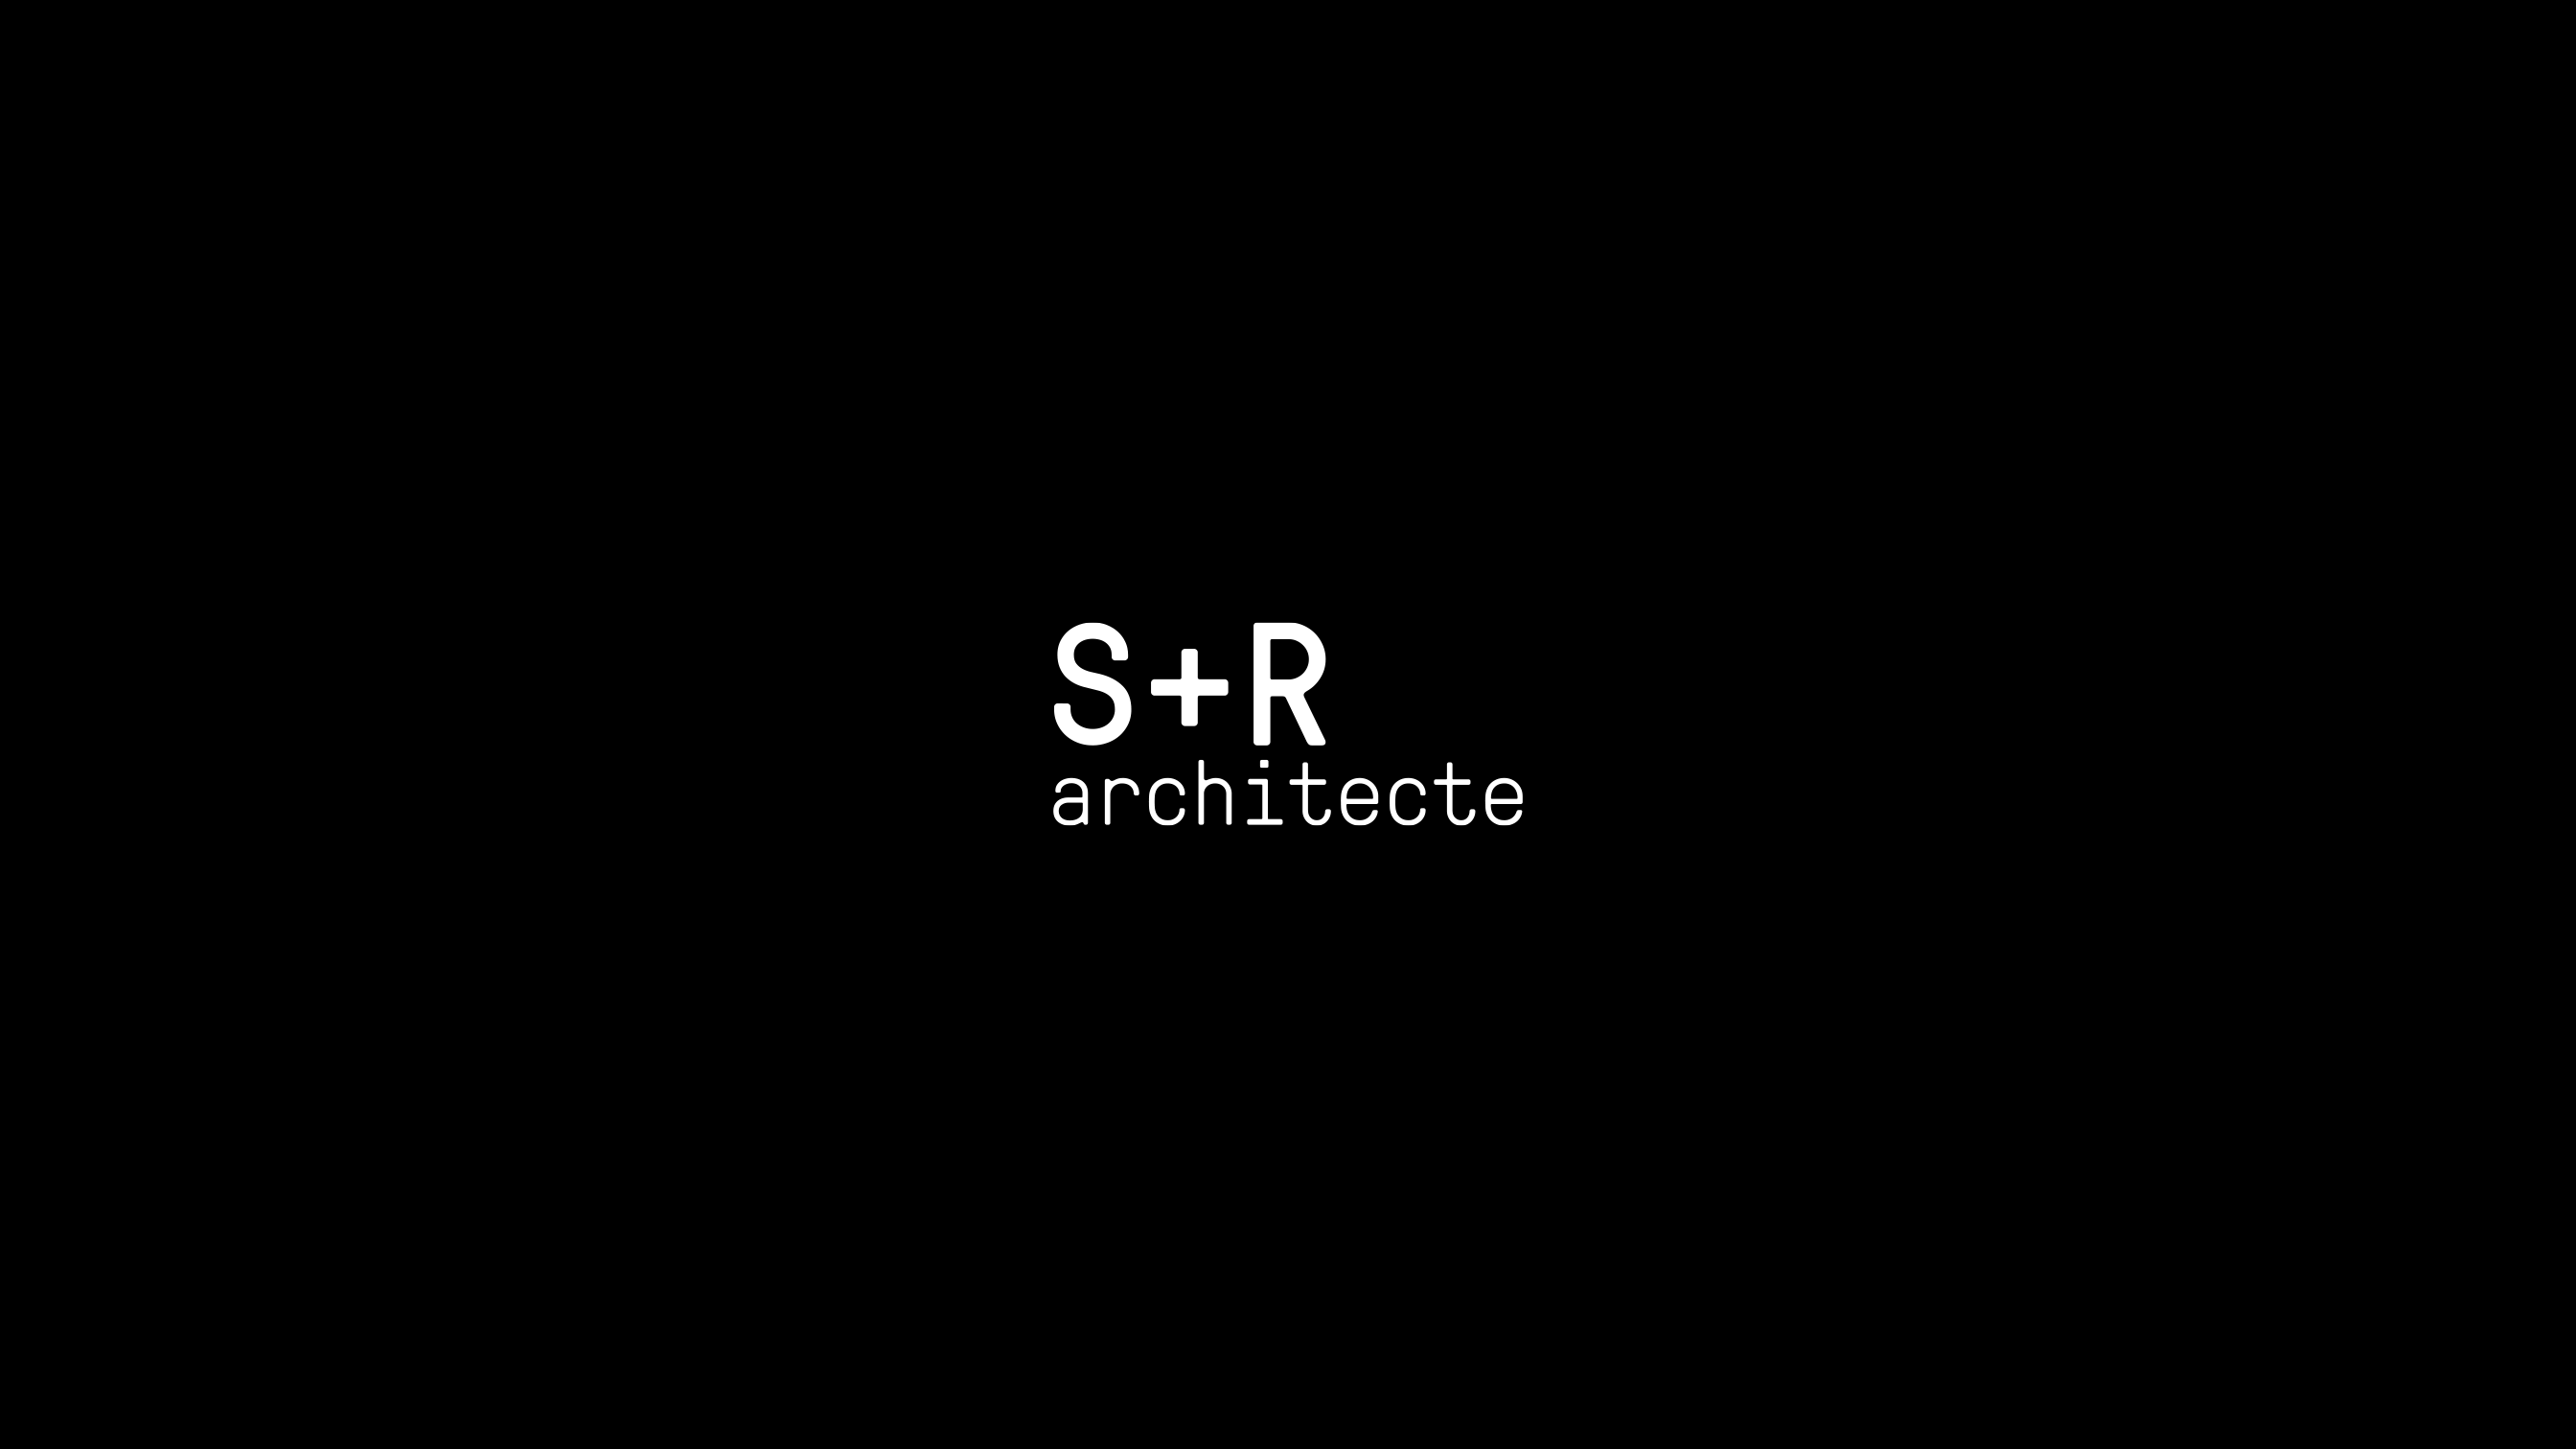 01-sr-architecte-logo-pikteo-webdesign-graphic-design-freelance-paris-bruxelles-londres